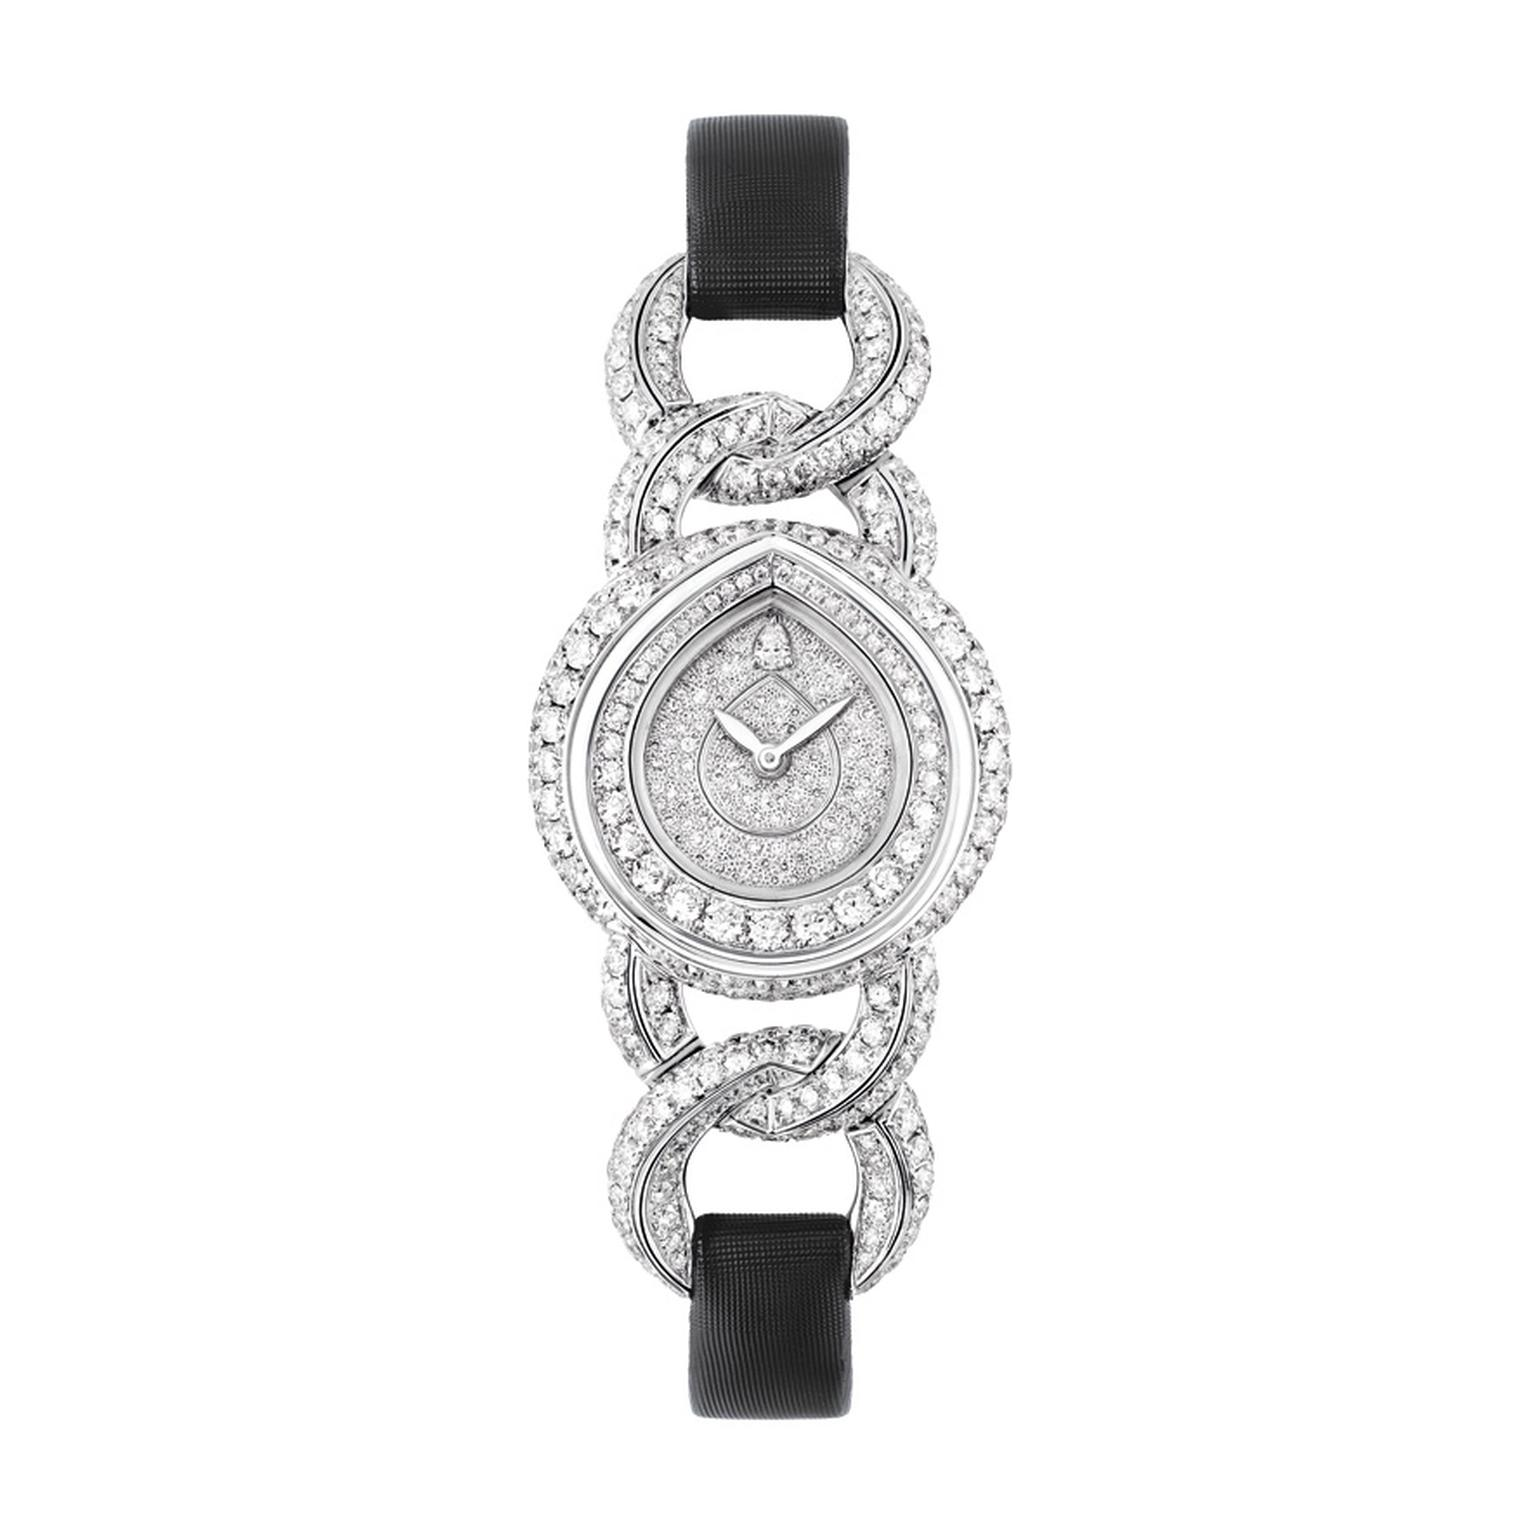 Chaumet Joséphine Rondes de Nuit diamond watch